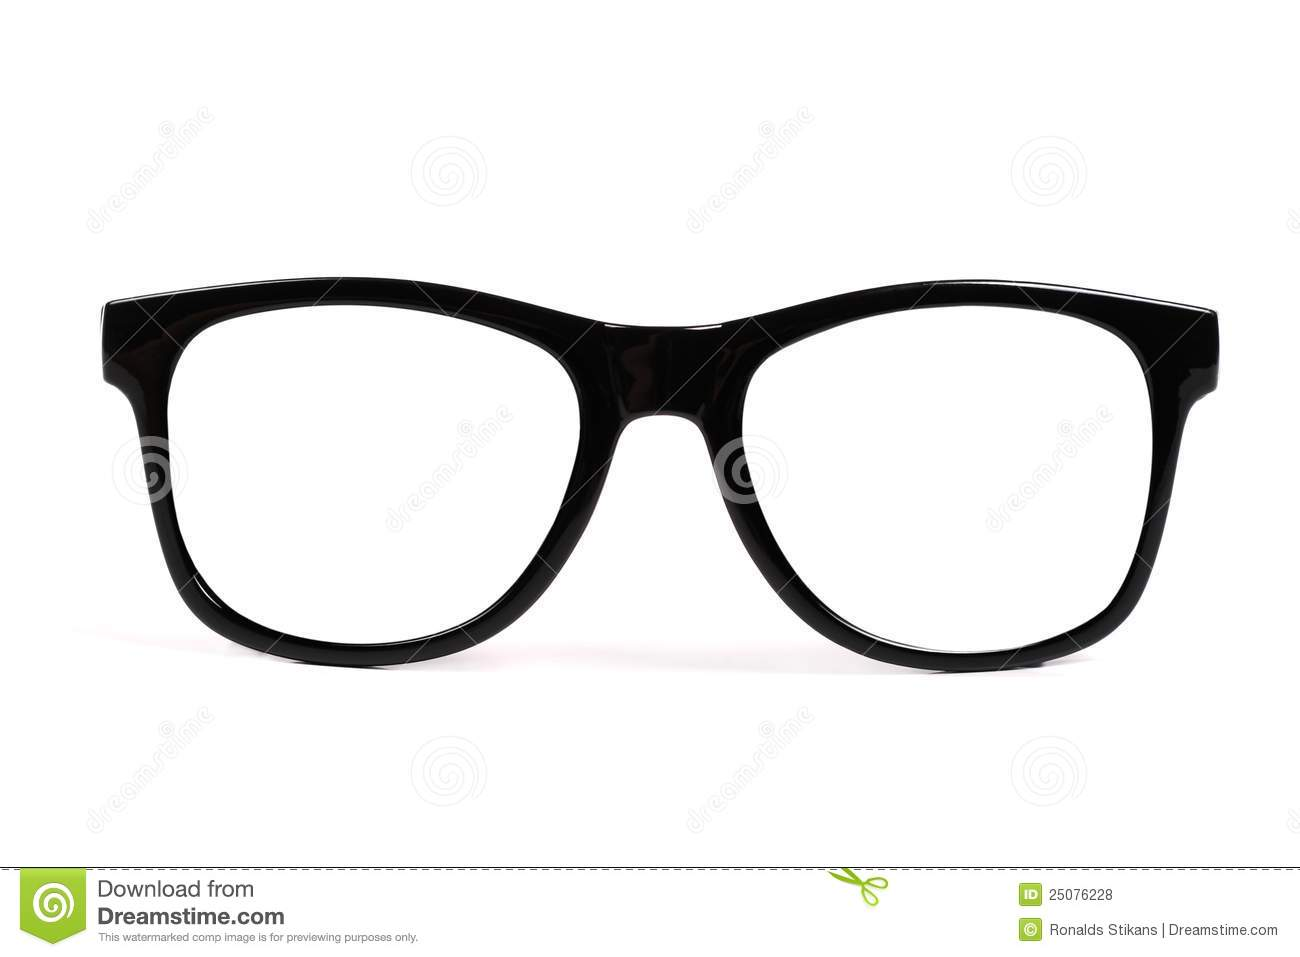 Black Frame Glasses Images : Black Frame Glasses Royalty Free Stock Photos - Image ...